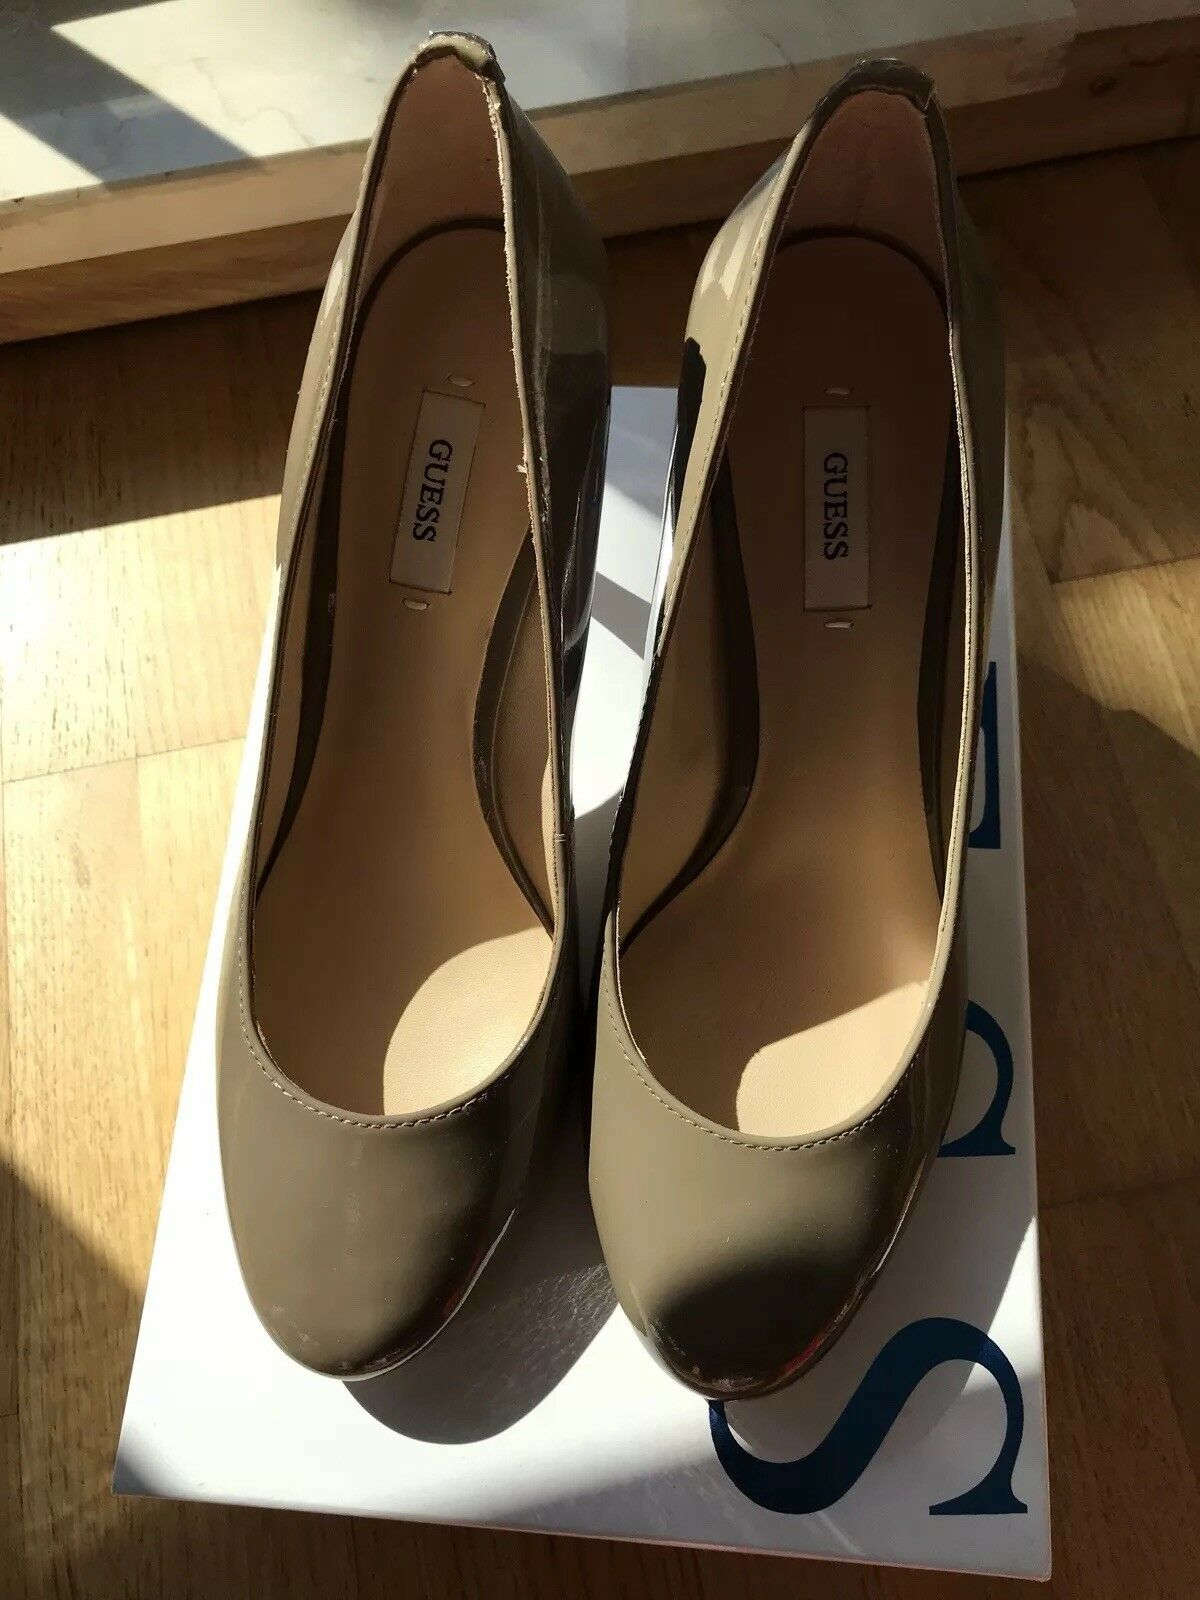 NEU GUESS Lack-Pumps  Taupe Taupe Taupe  Gr. 38  NP 150 Euro 450c95